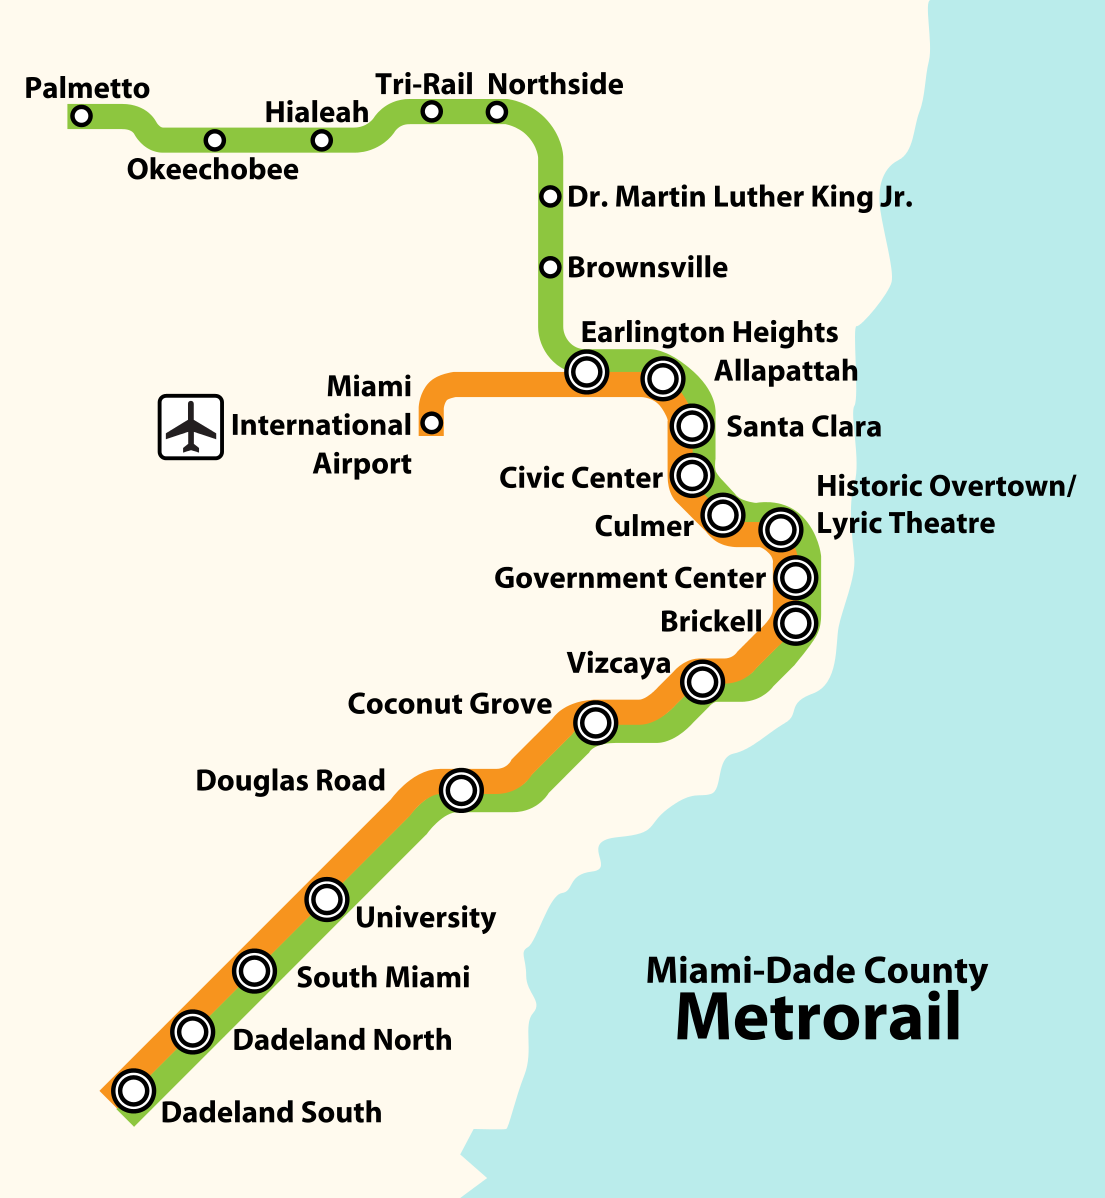 file:metrorail (miami-dade county) system map.svg